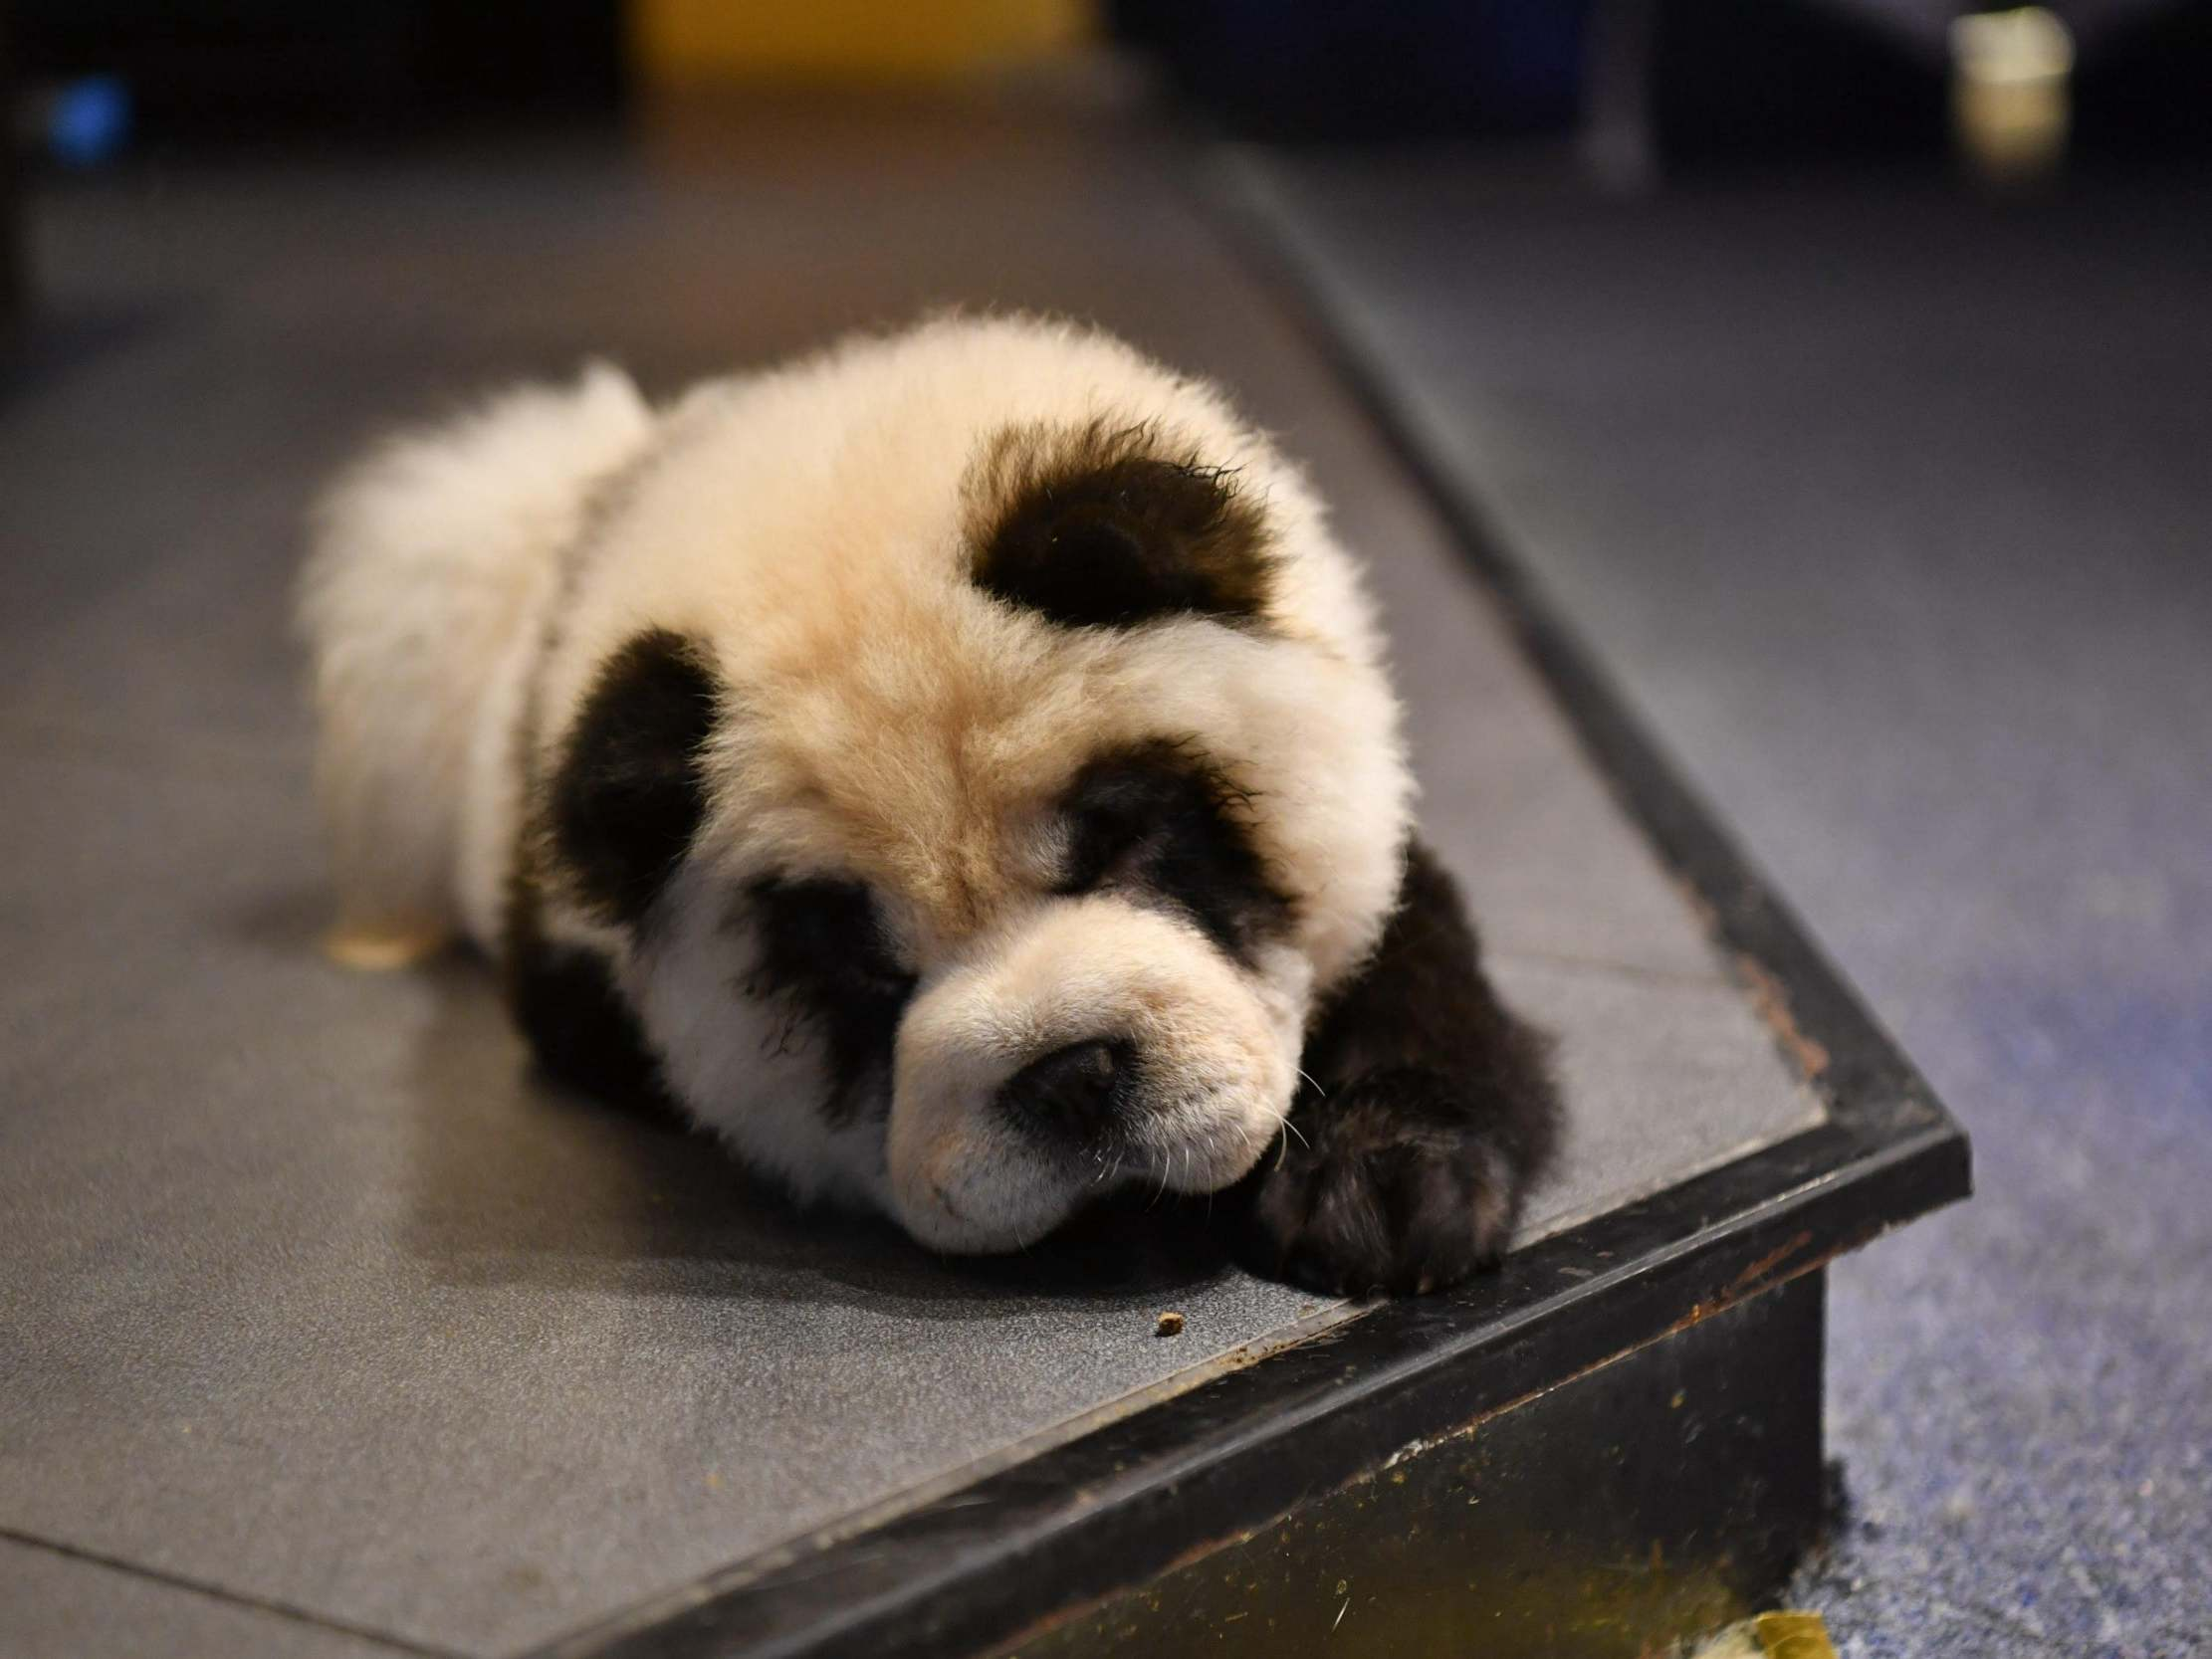 Chinese Cafe Faces Backlash After Painting Dogs To Look Like Pandas The Independent The Independent